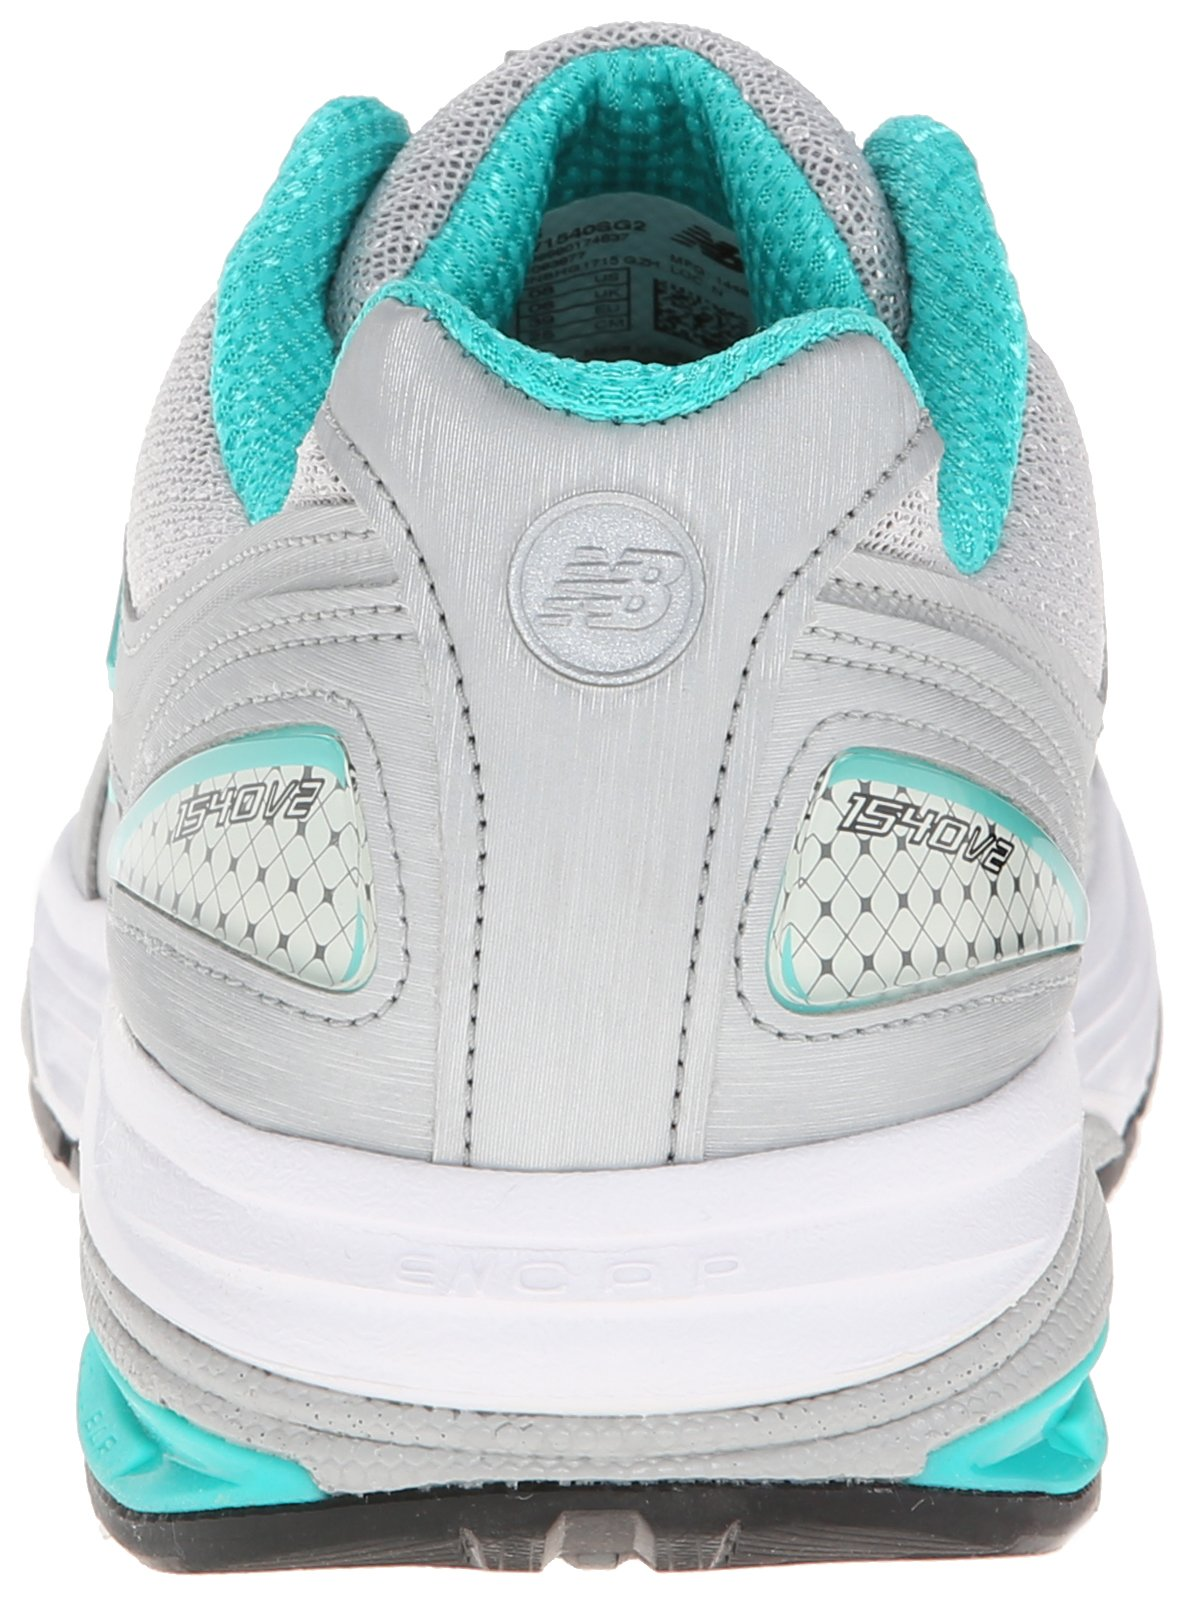 New Balance Women's W1540V2 Running Shoe Running Shoe,Silver/Grey,7 D US by New Balance (Image #2)